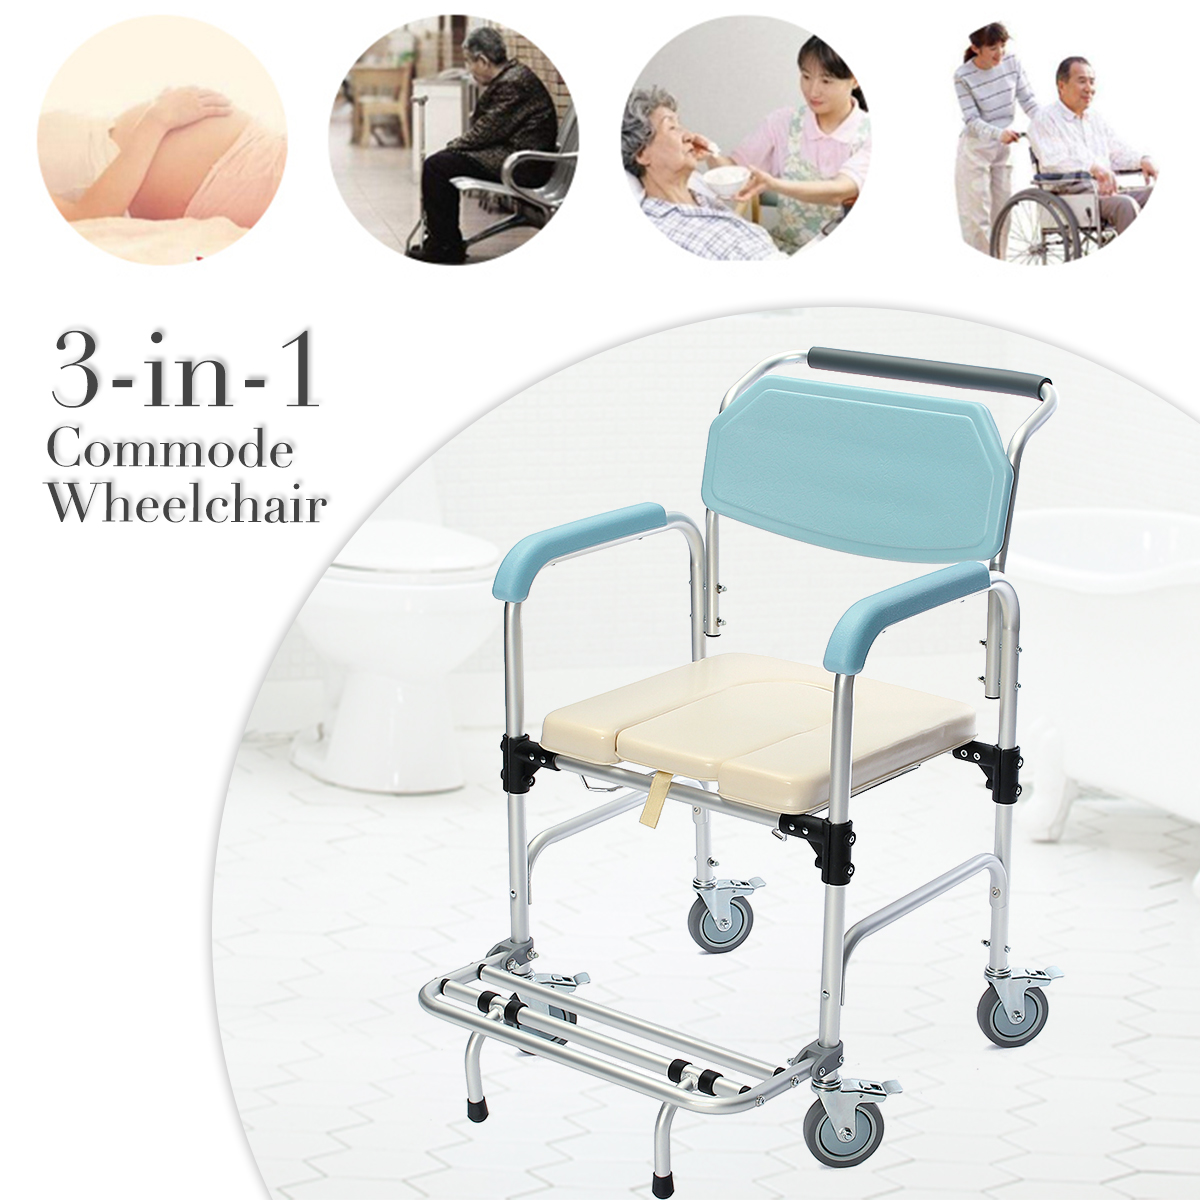 Buy toilet chair folding commode and get free shipping on AliExpress.com